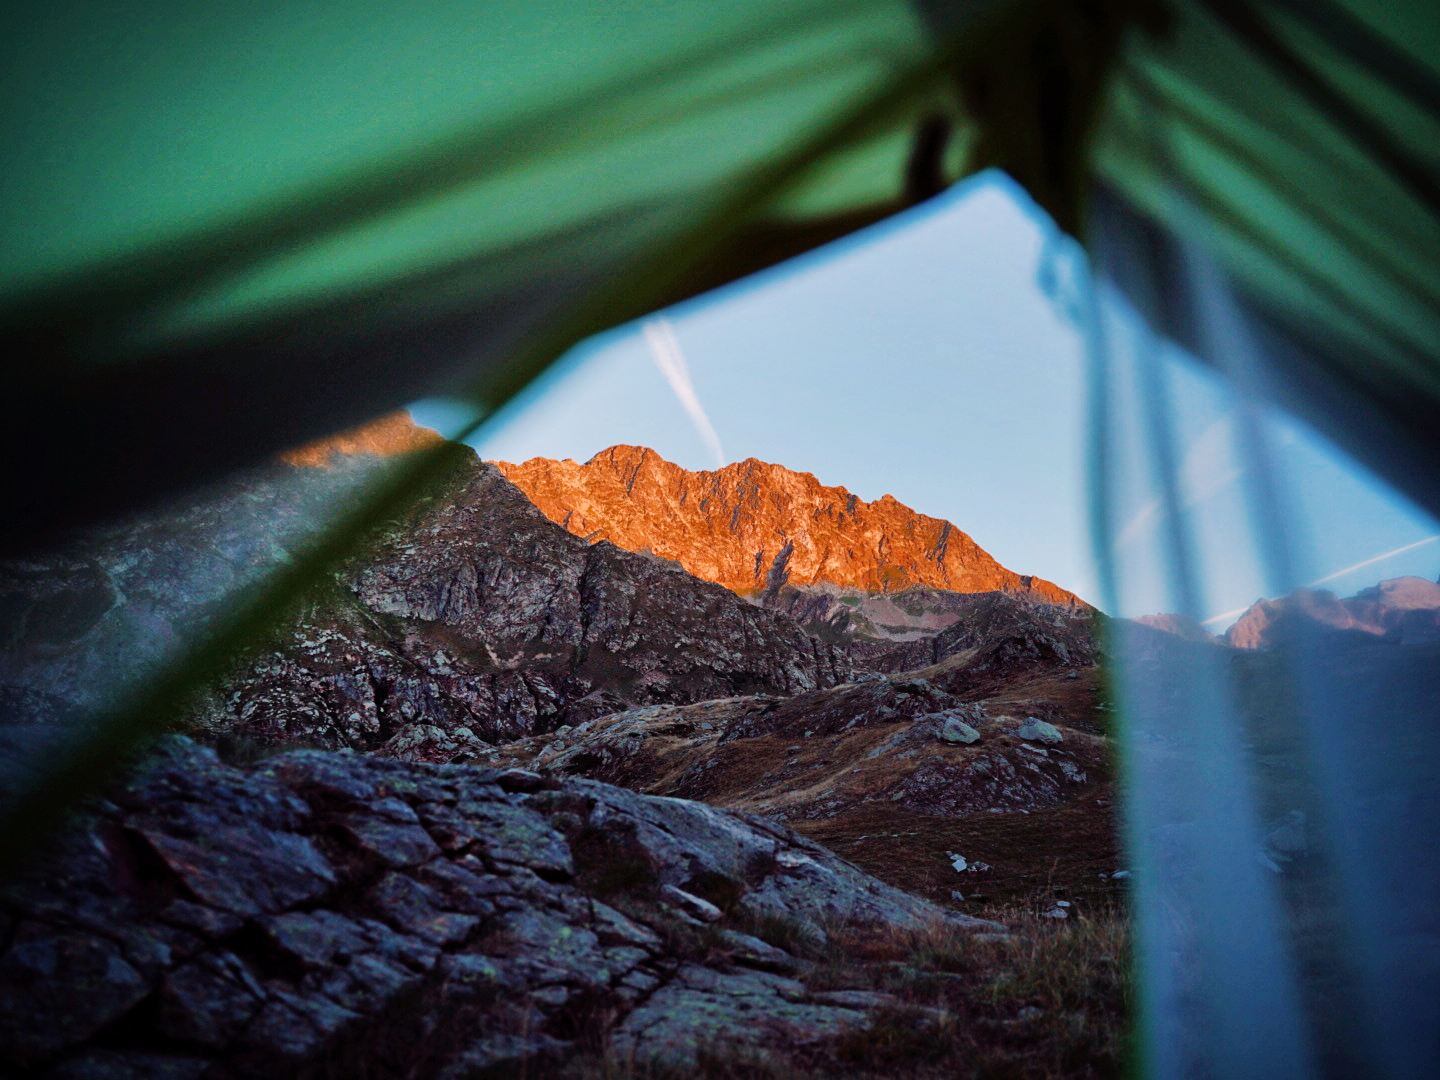 Seeing the mountains from the tent while wild camping.